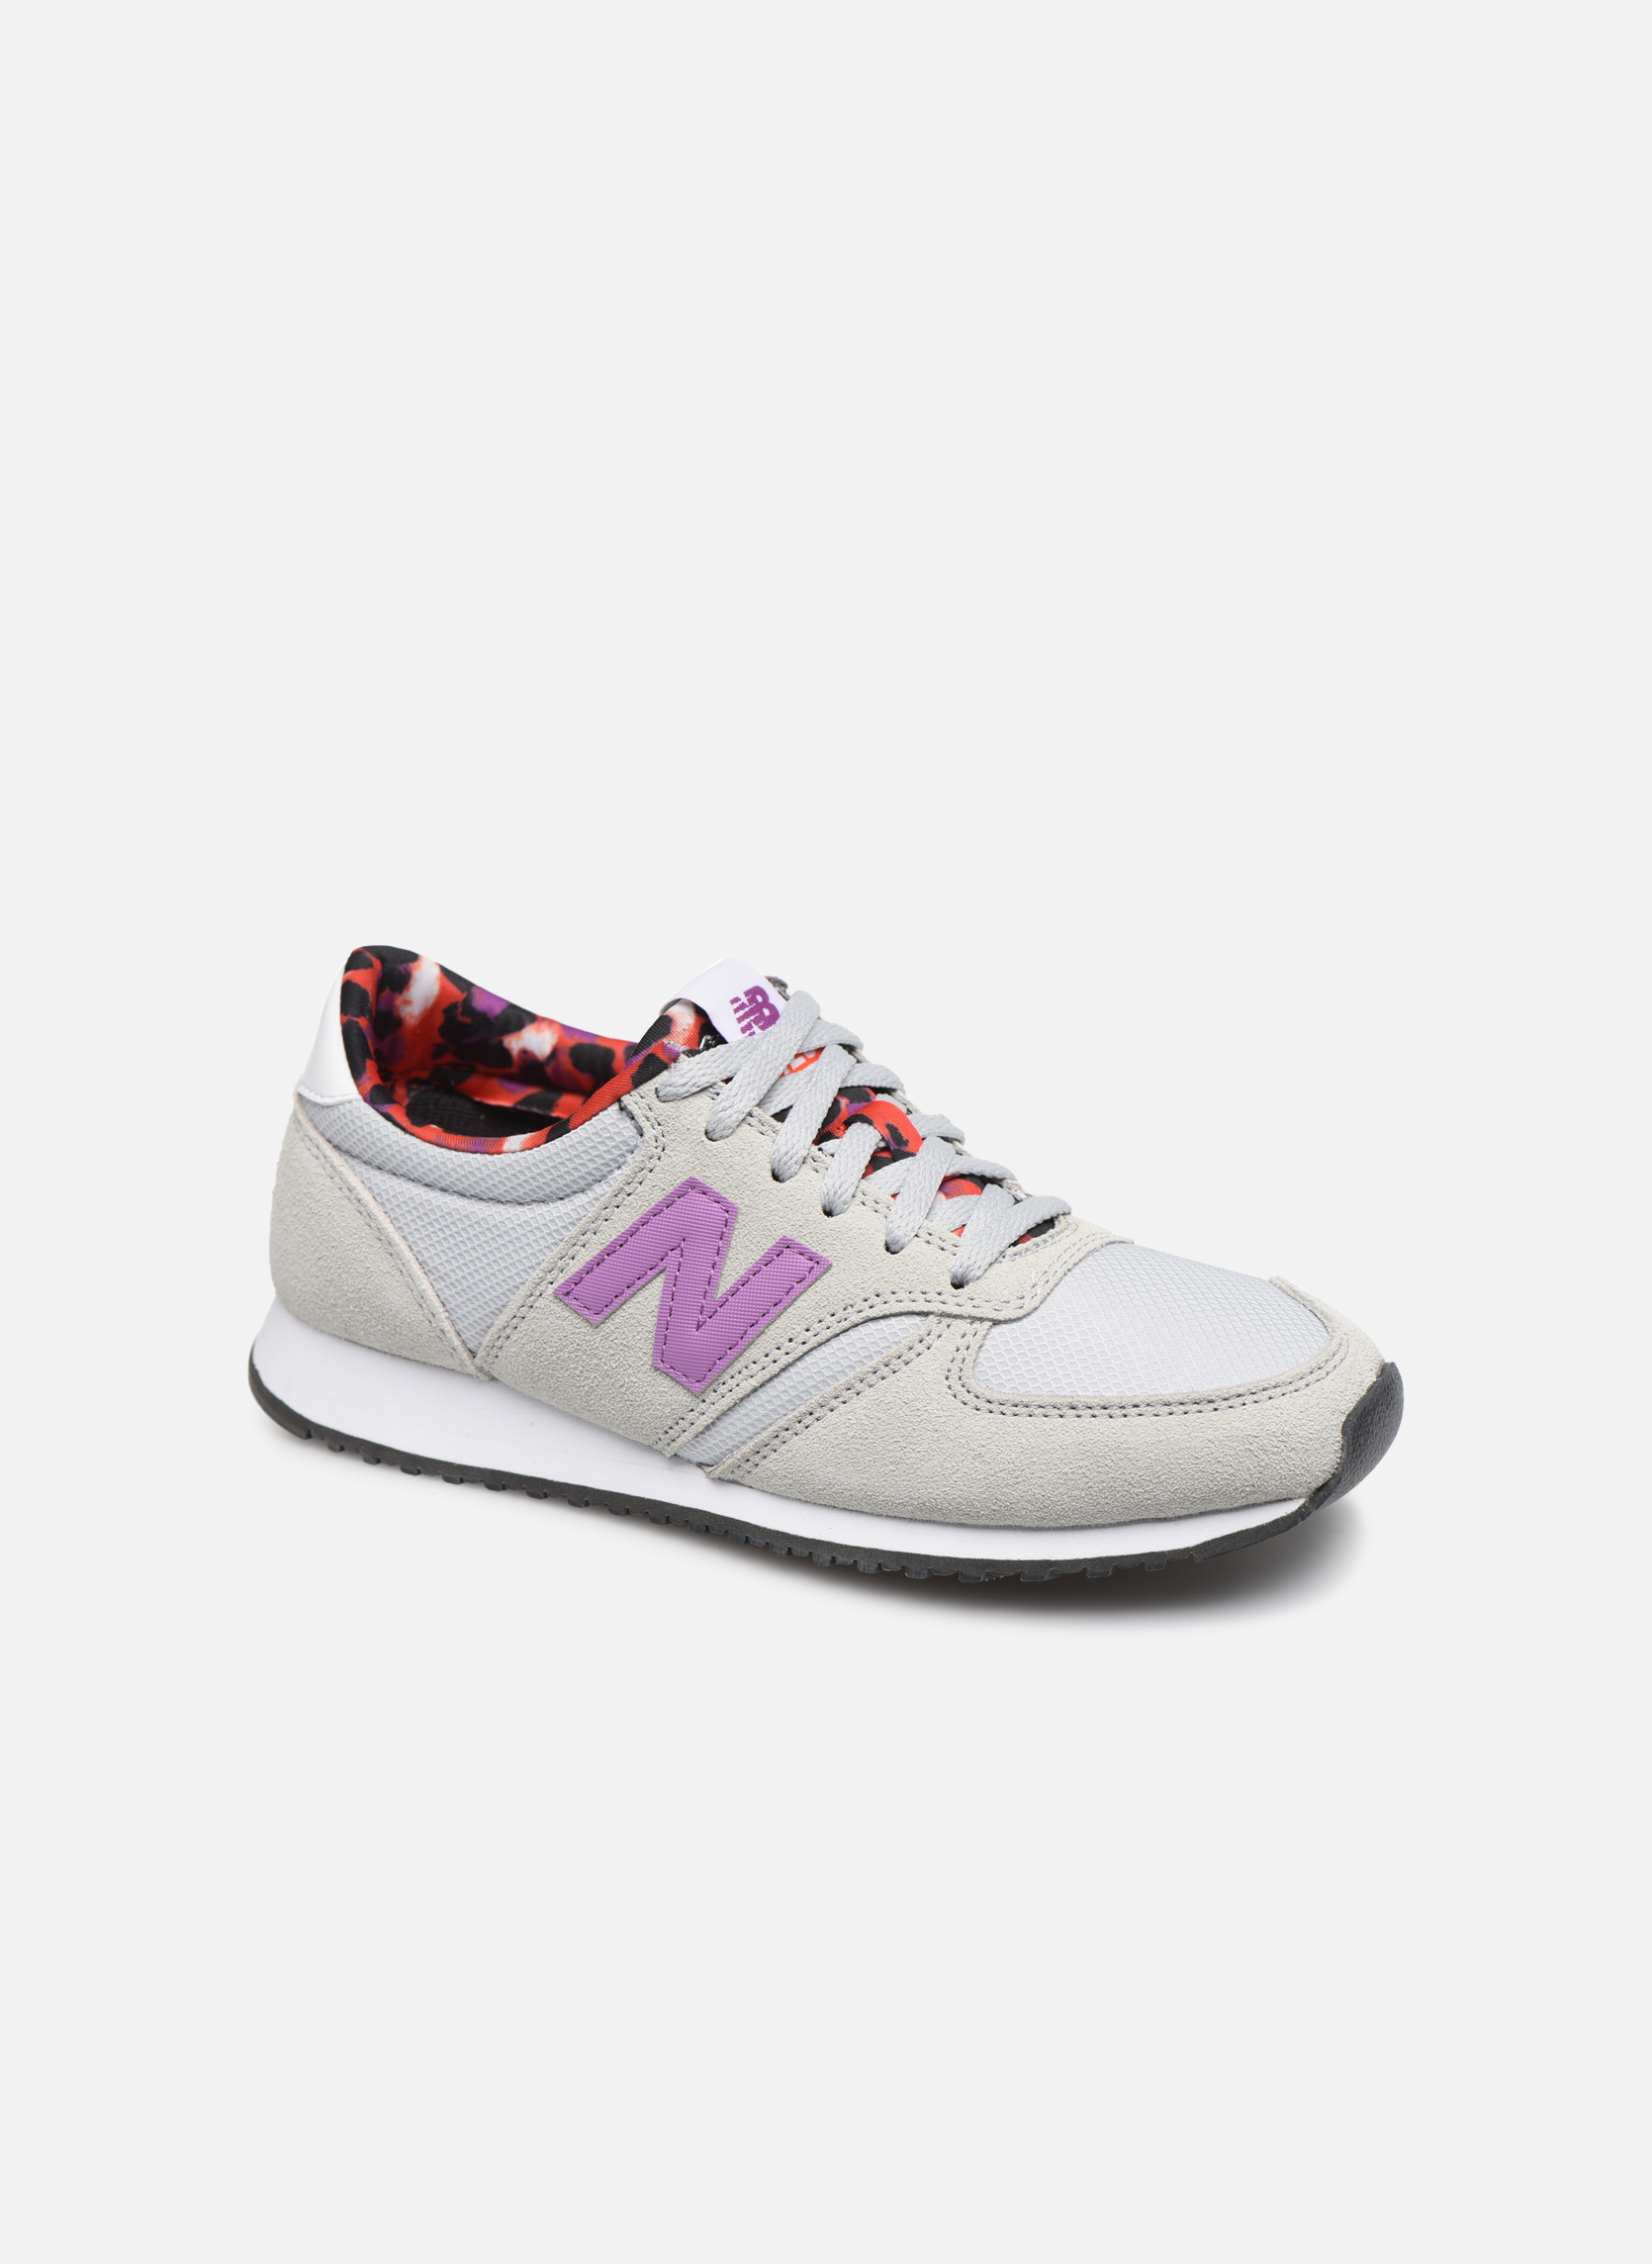 APC Grey/Purple